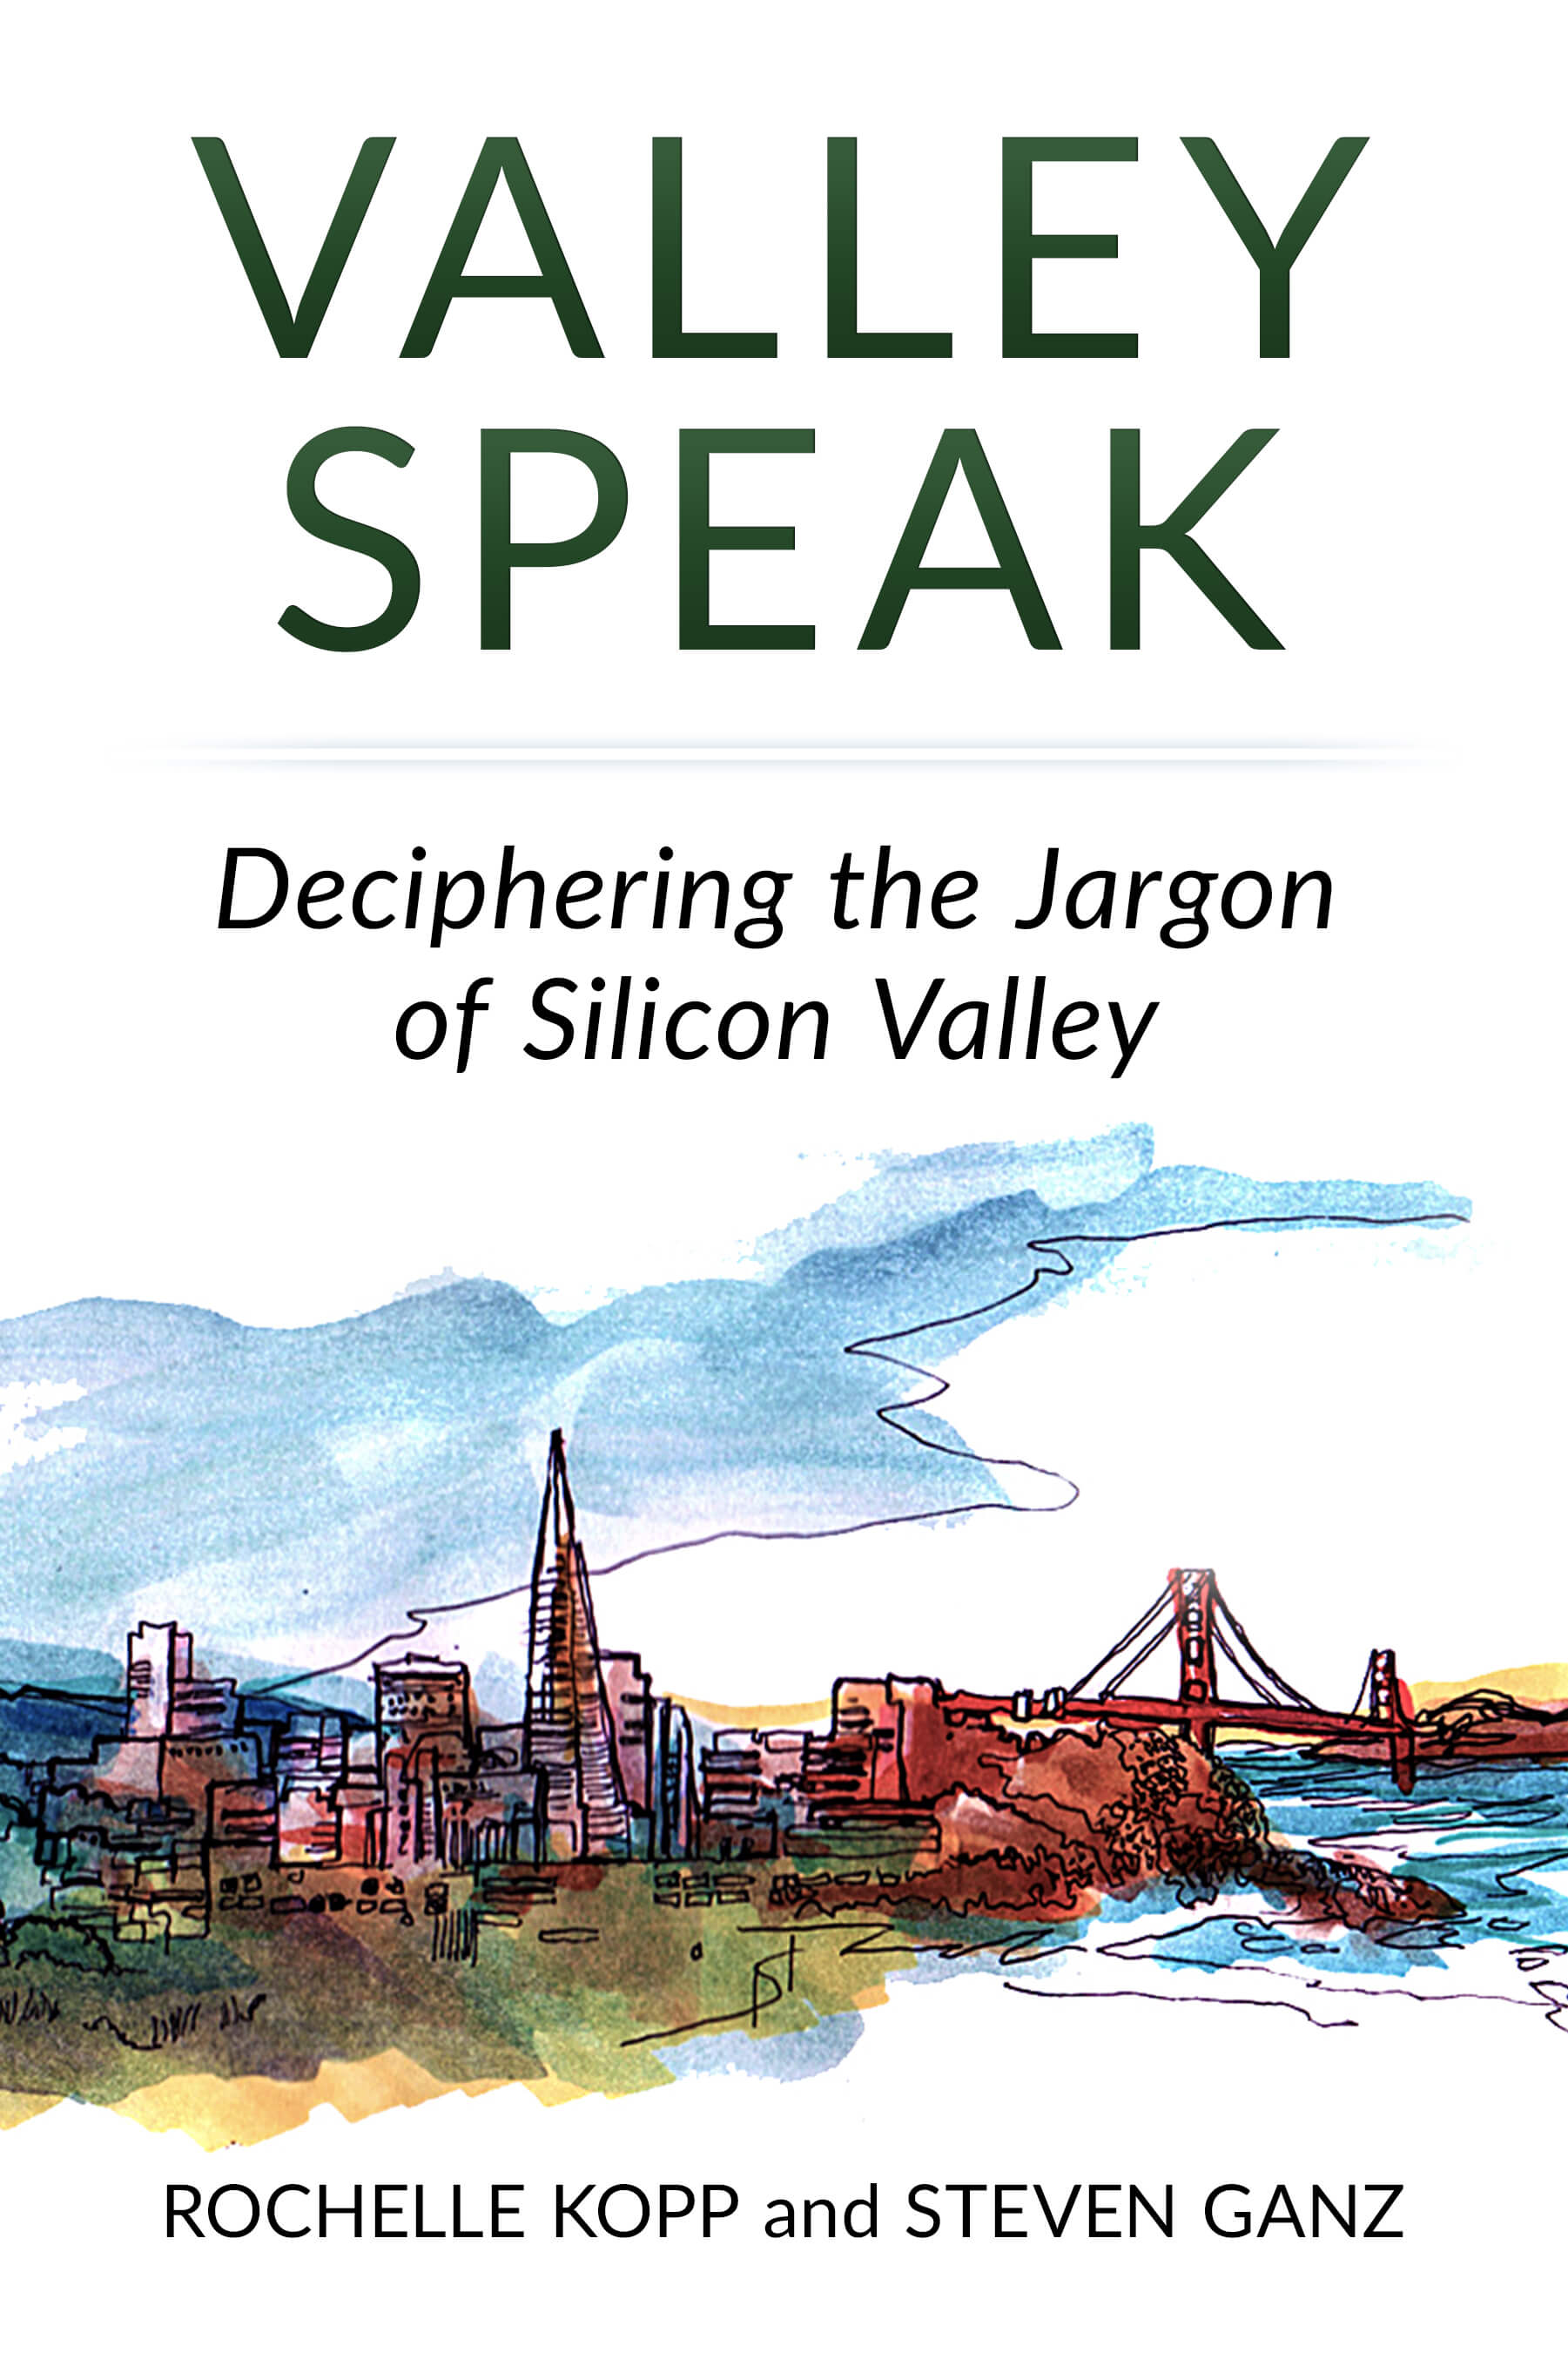 cover of the Valley Speak: Deciphering the Jargon of Silicon Valley book